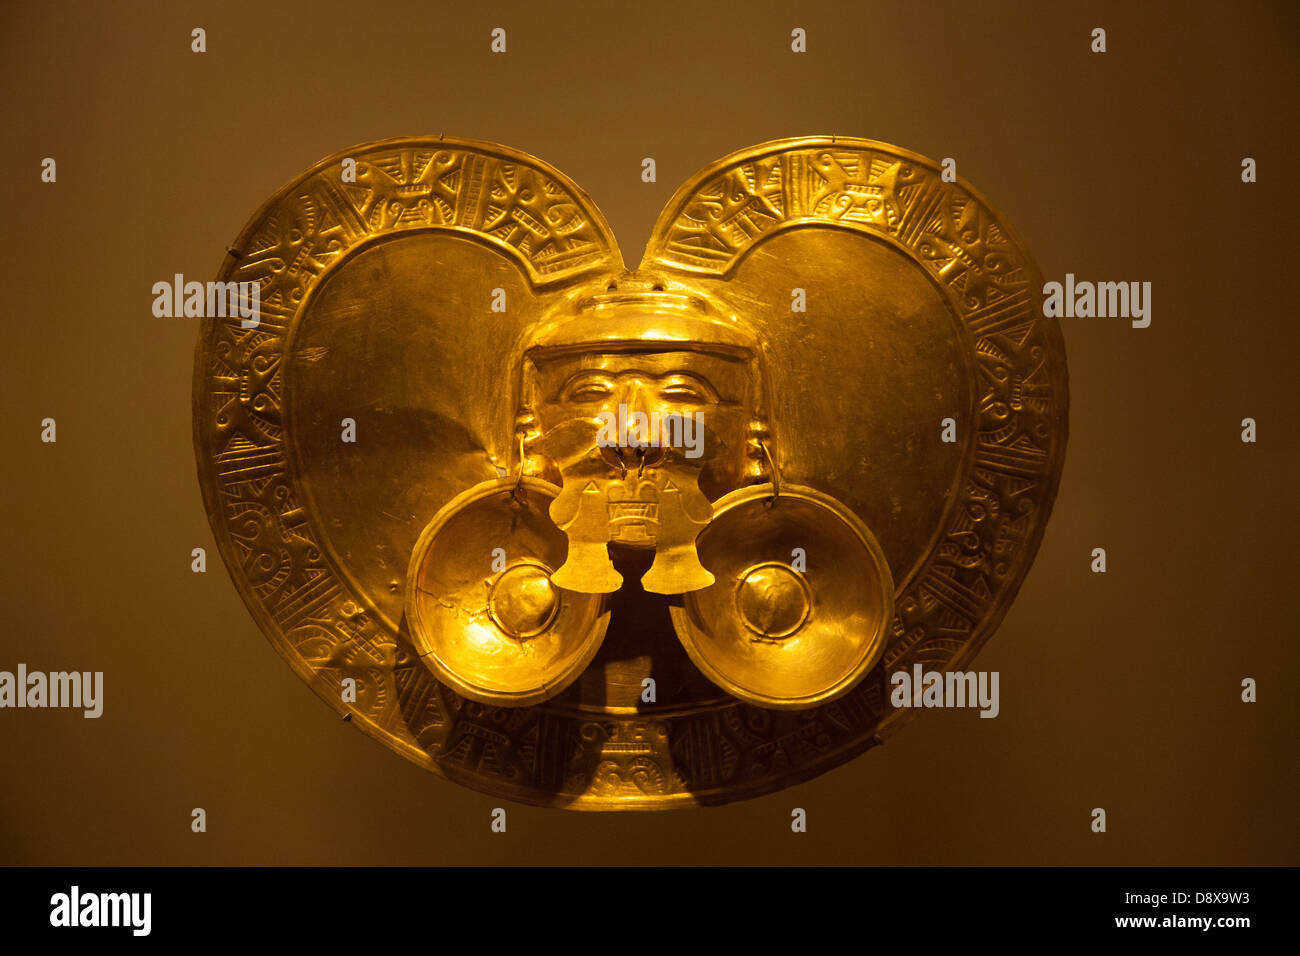 Pre Colobian gold work on display in the Museo del Oro, Bogota, Colombia - Stock Image